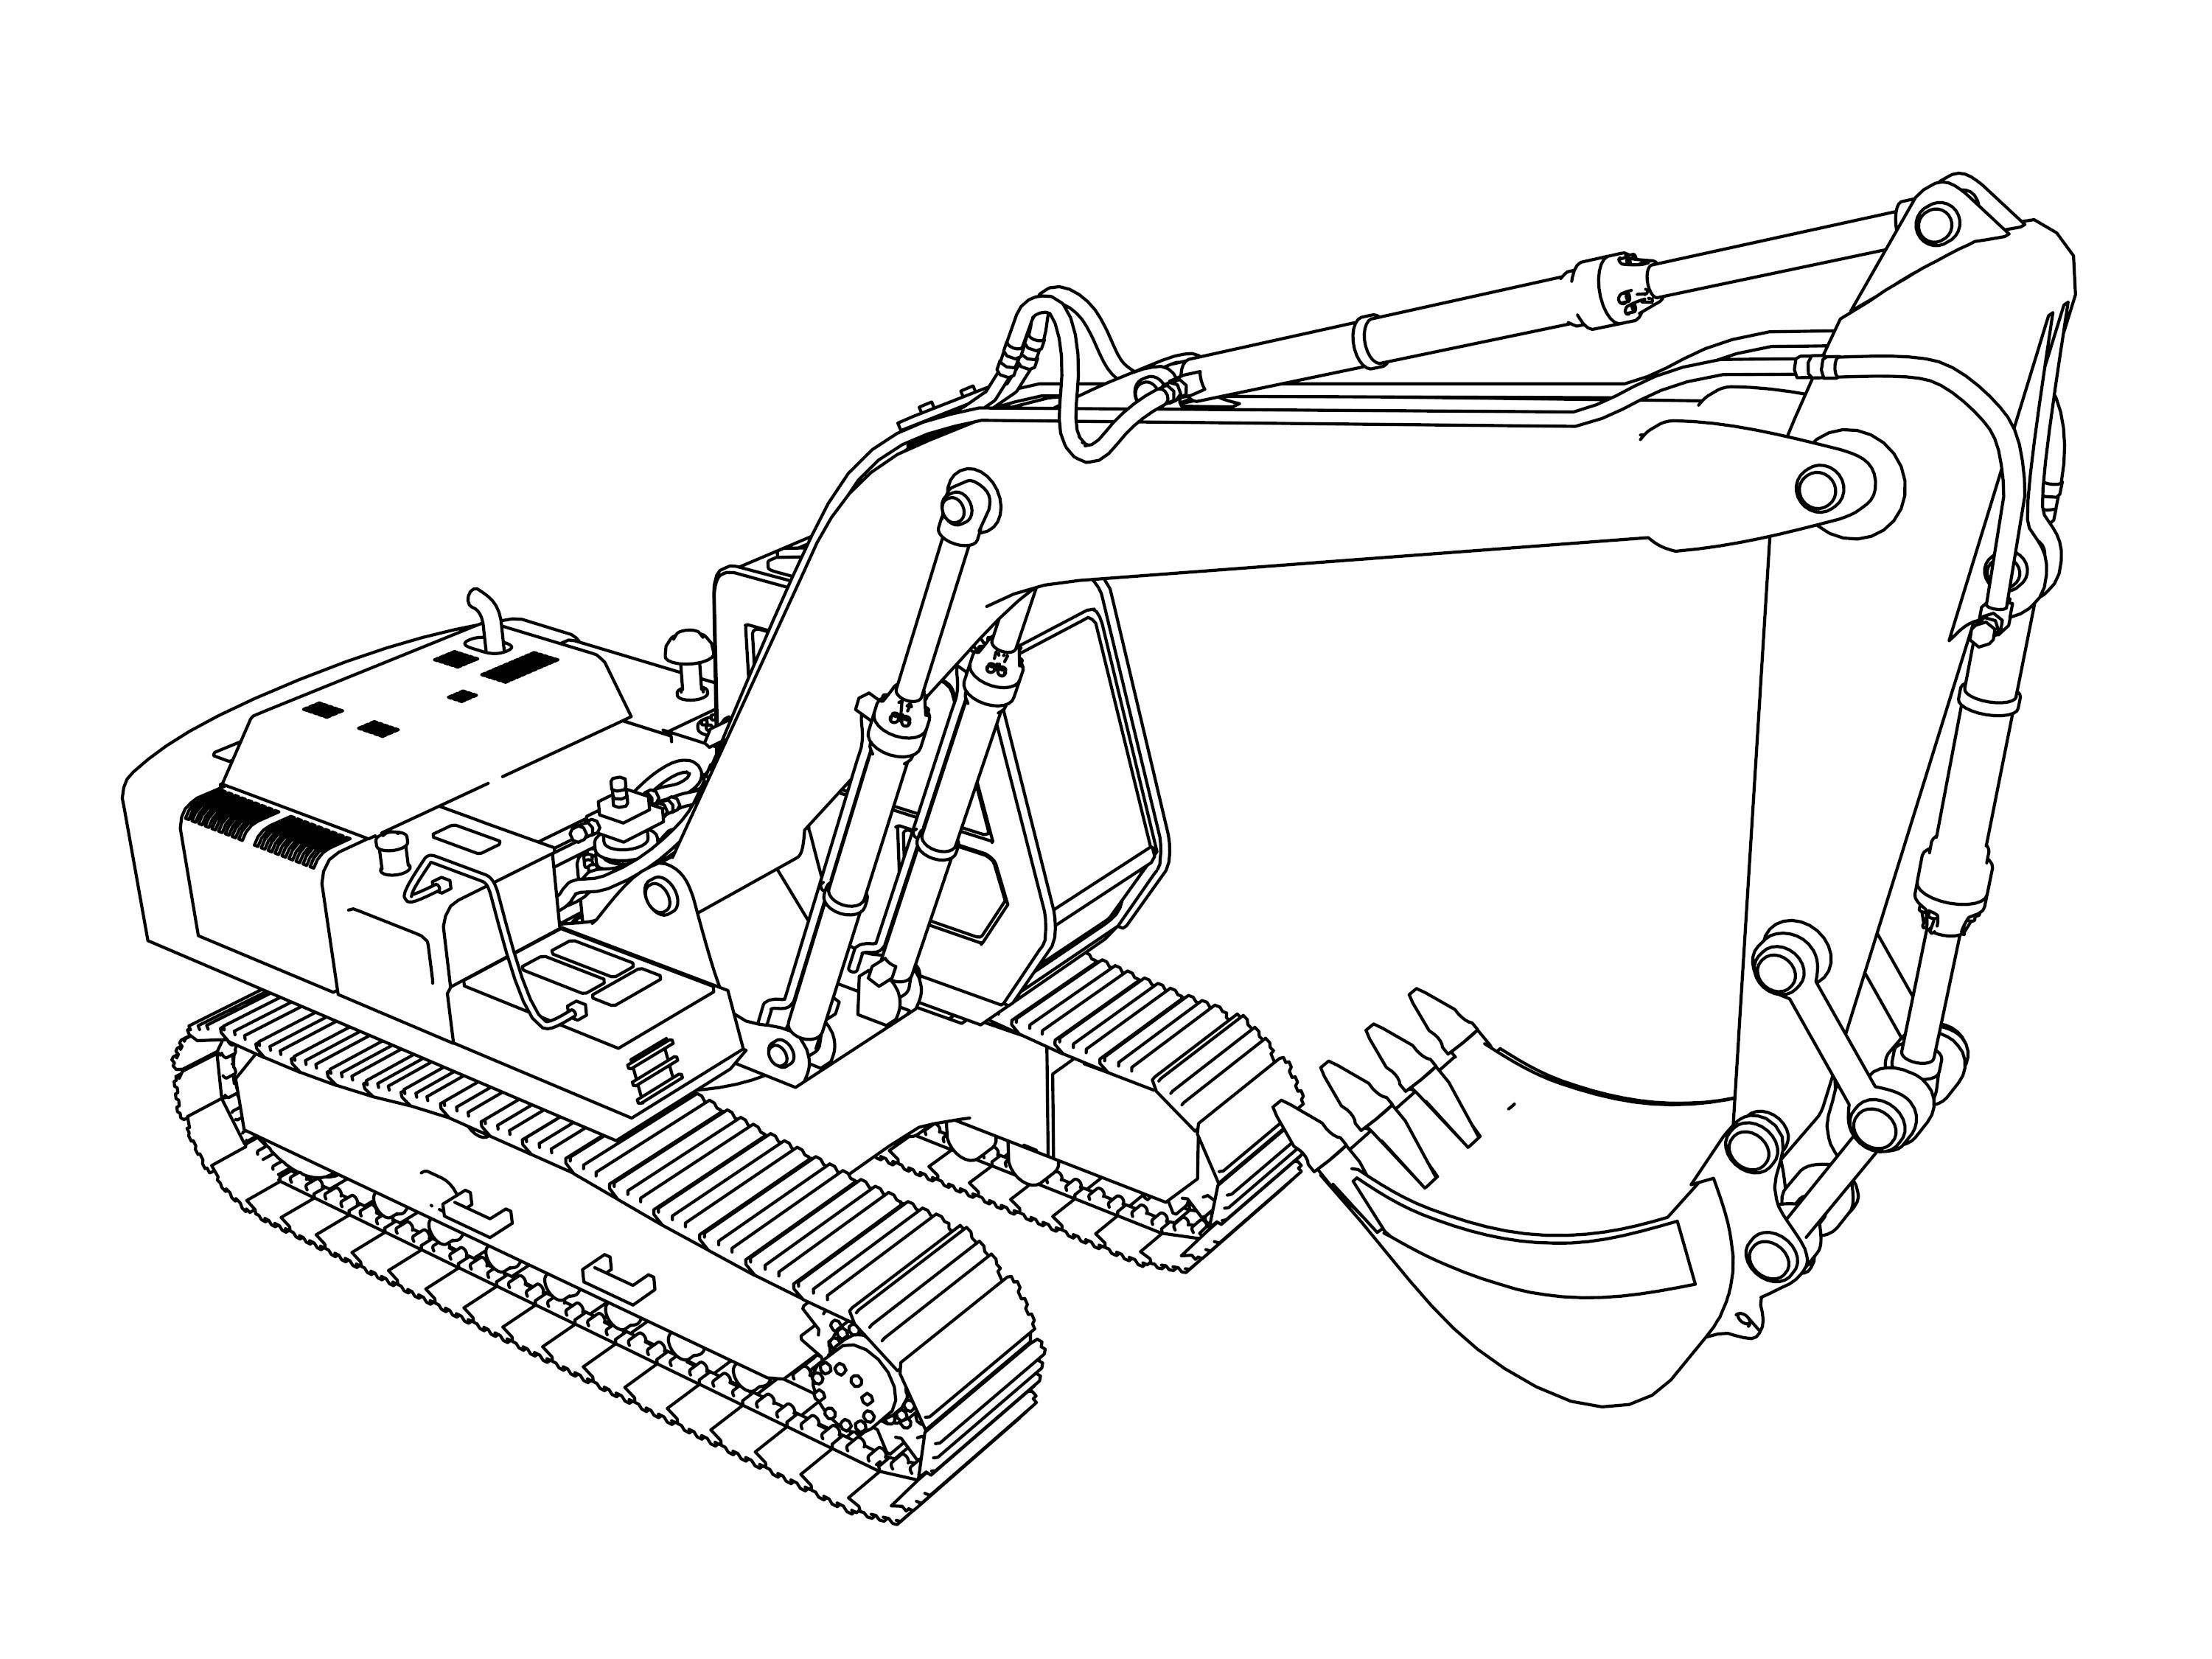 construction equipment coloring pages construction equipment coloring pages clipart panda pages equipment coloring construction